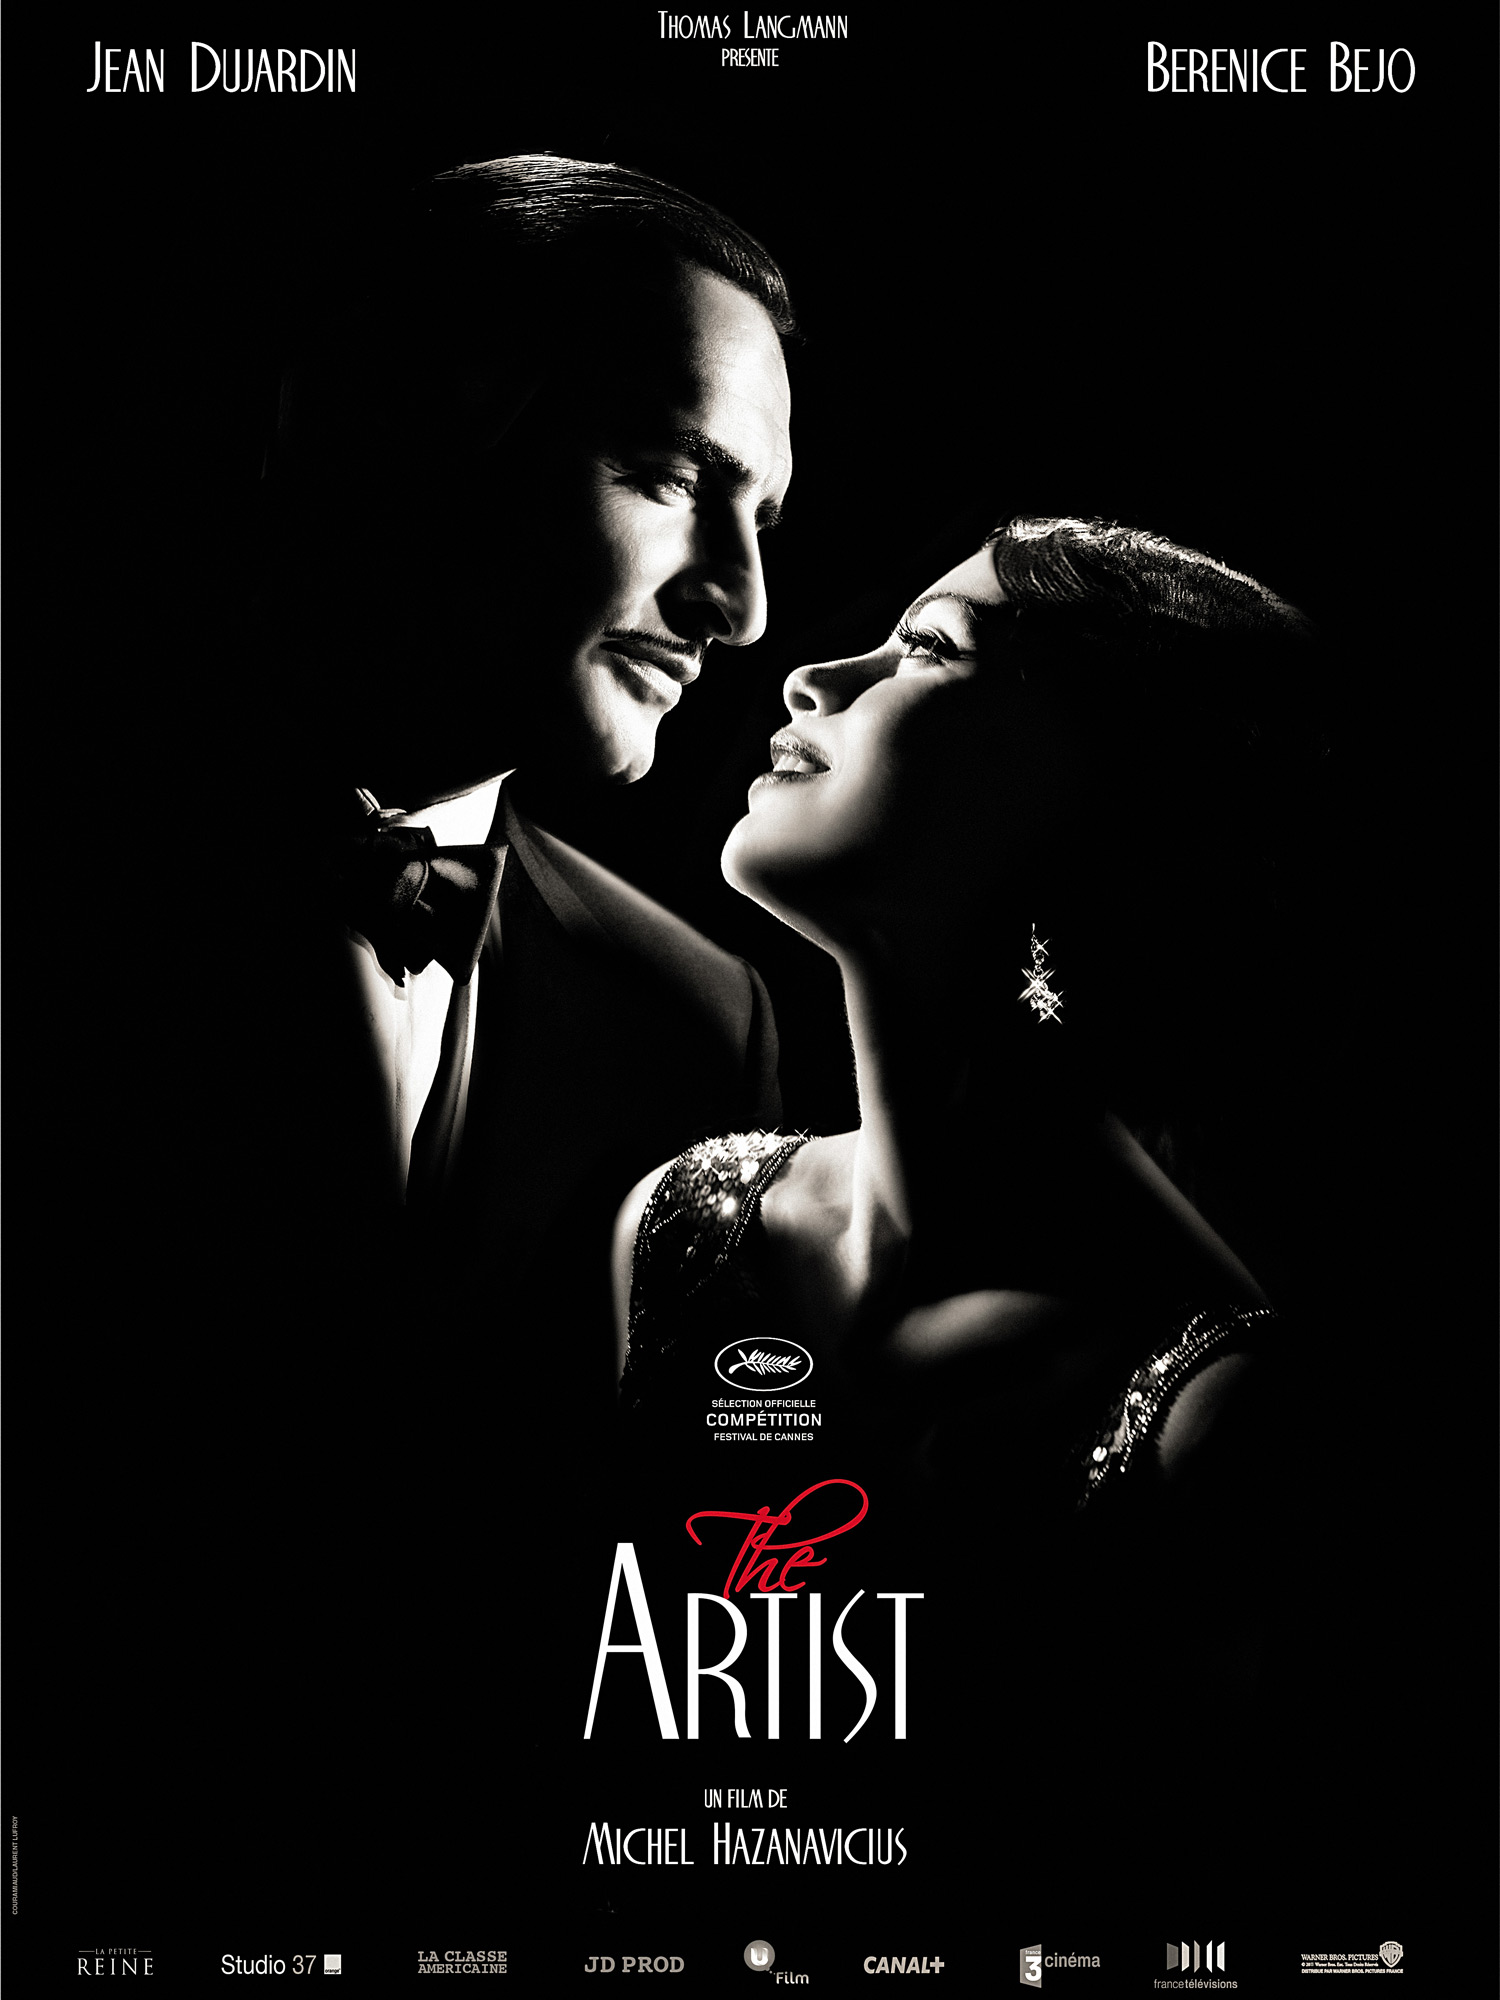 http://myscreens.fr/wp-content/uploads/2011/10/the-artist-affiche.jpg